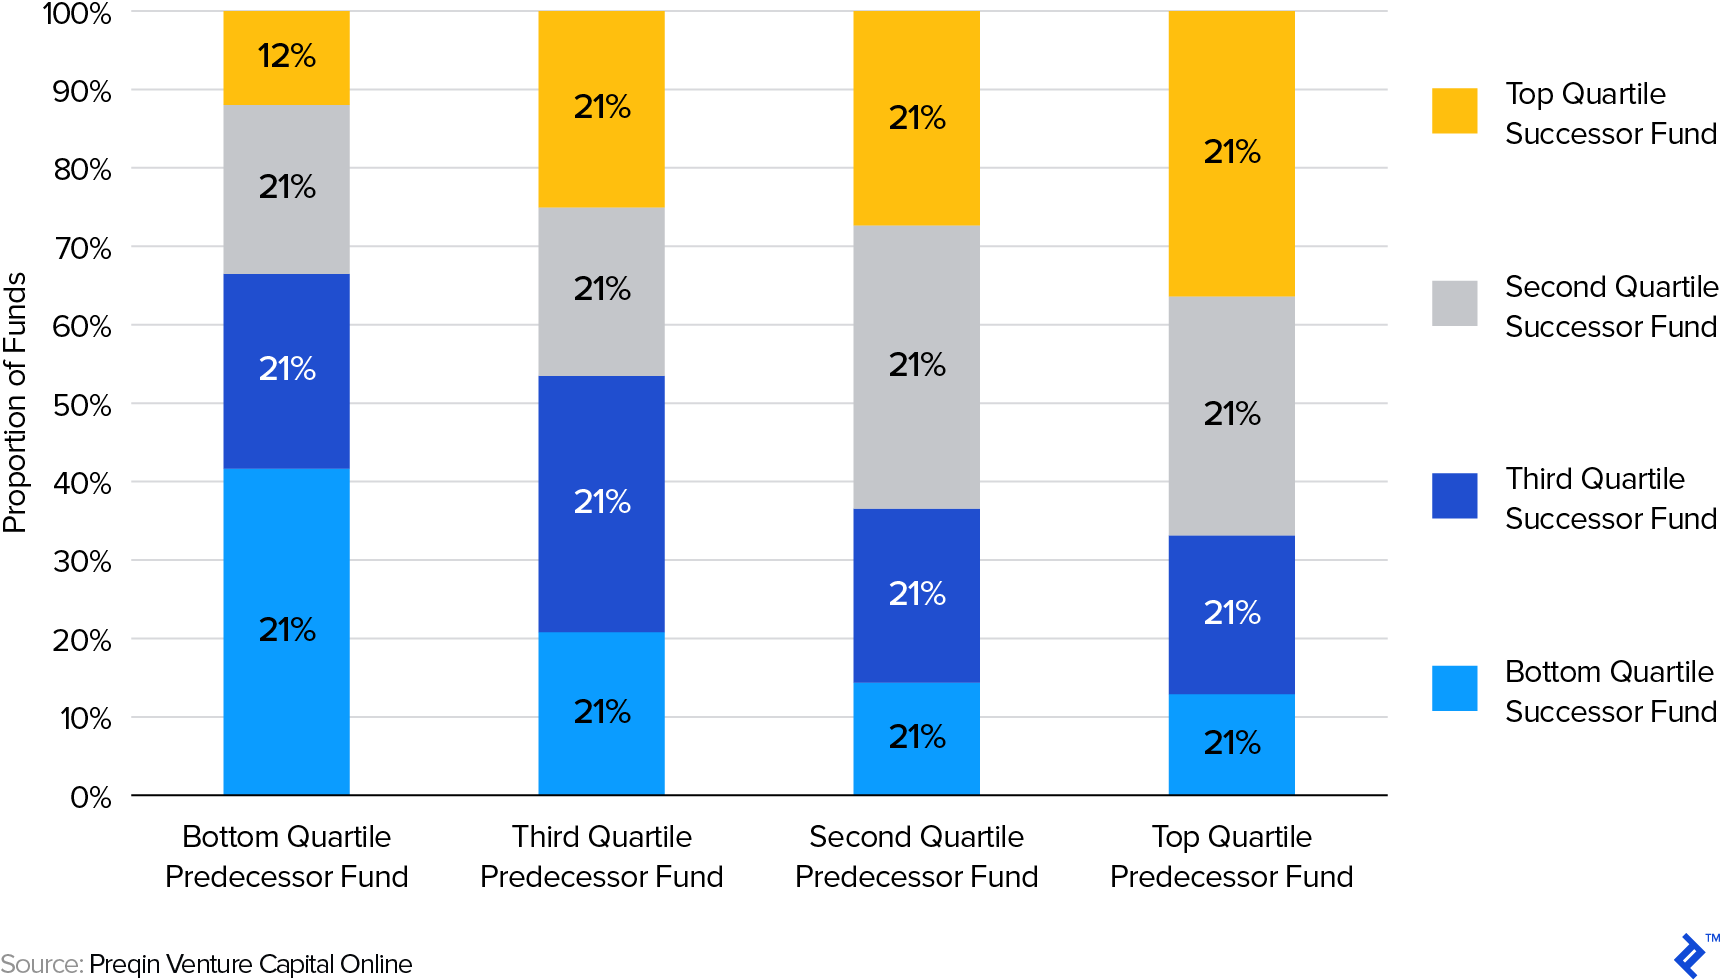 Relationship Between Predecessor and Successor Venture Capital Fund Quartiles (2017)